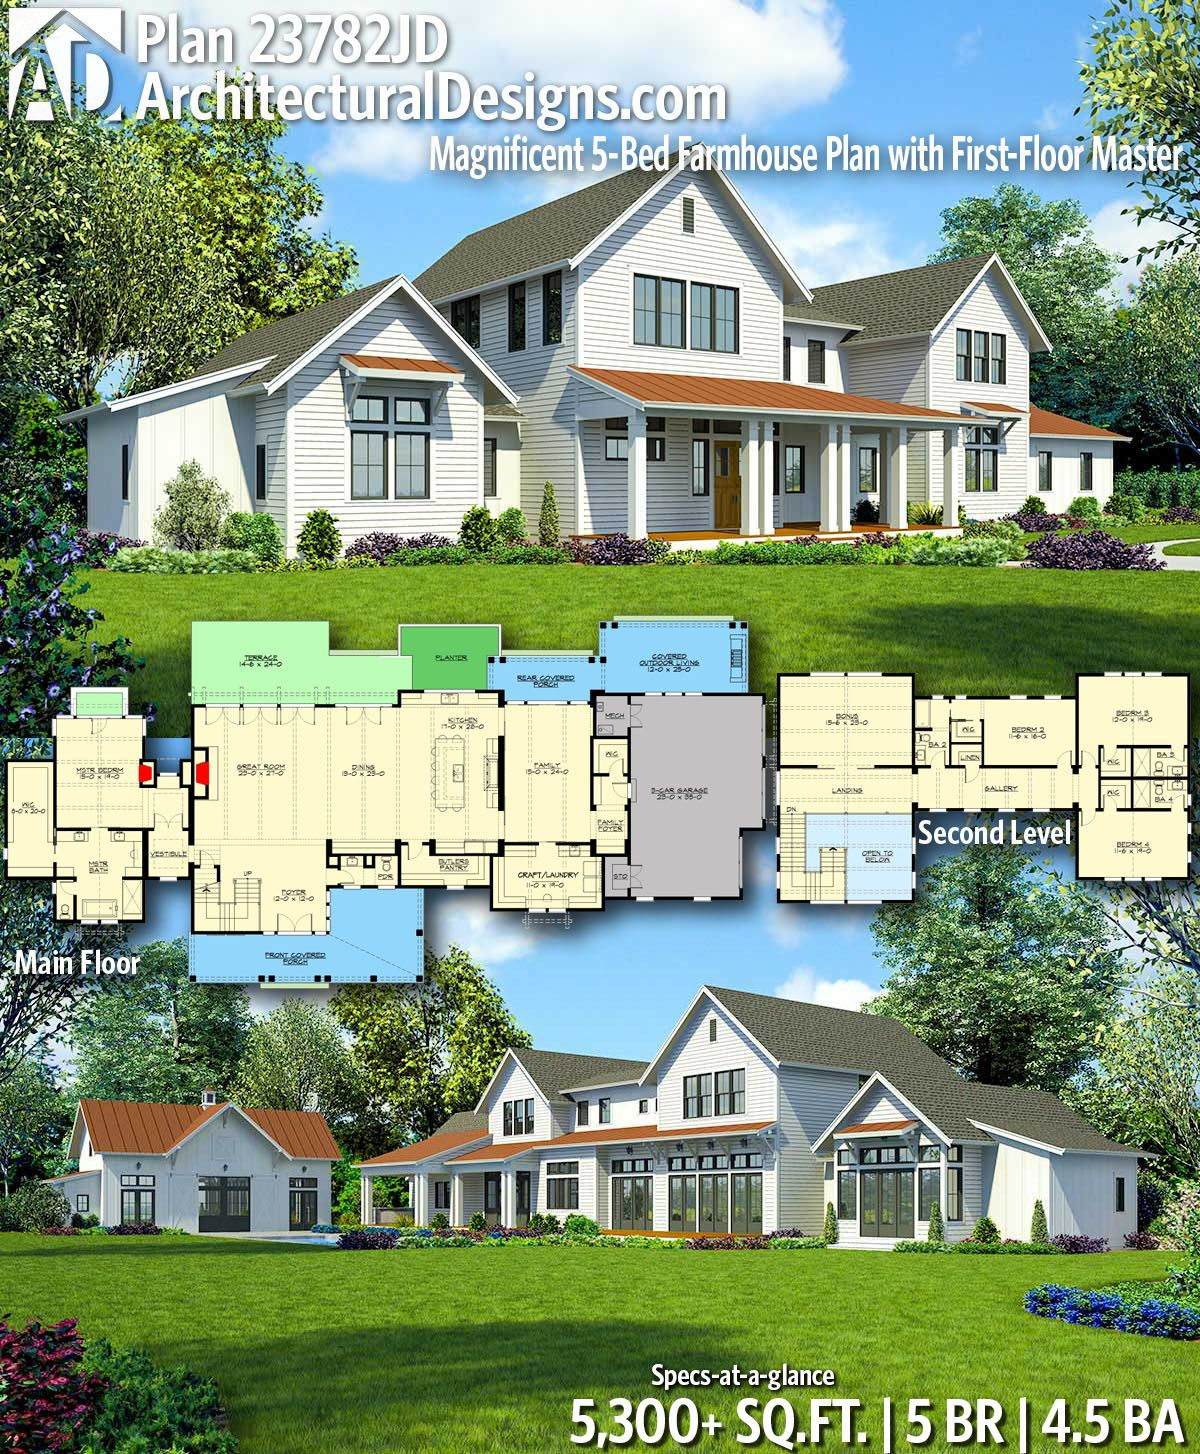 Plan 23782JD Sprawling Modern Farmhouse Plan with First